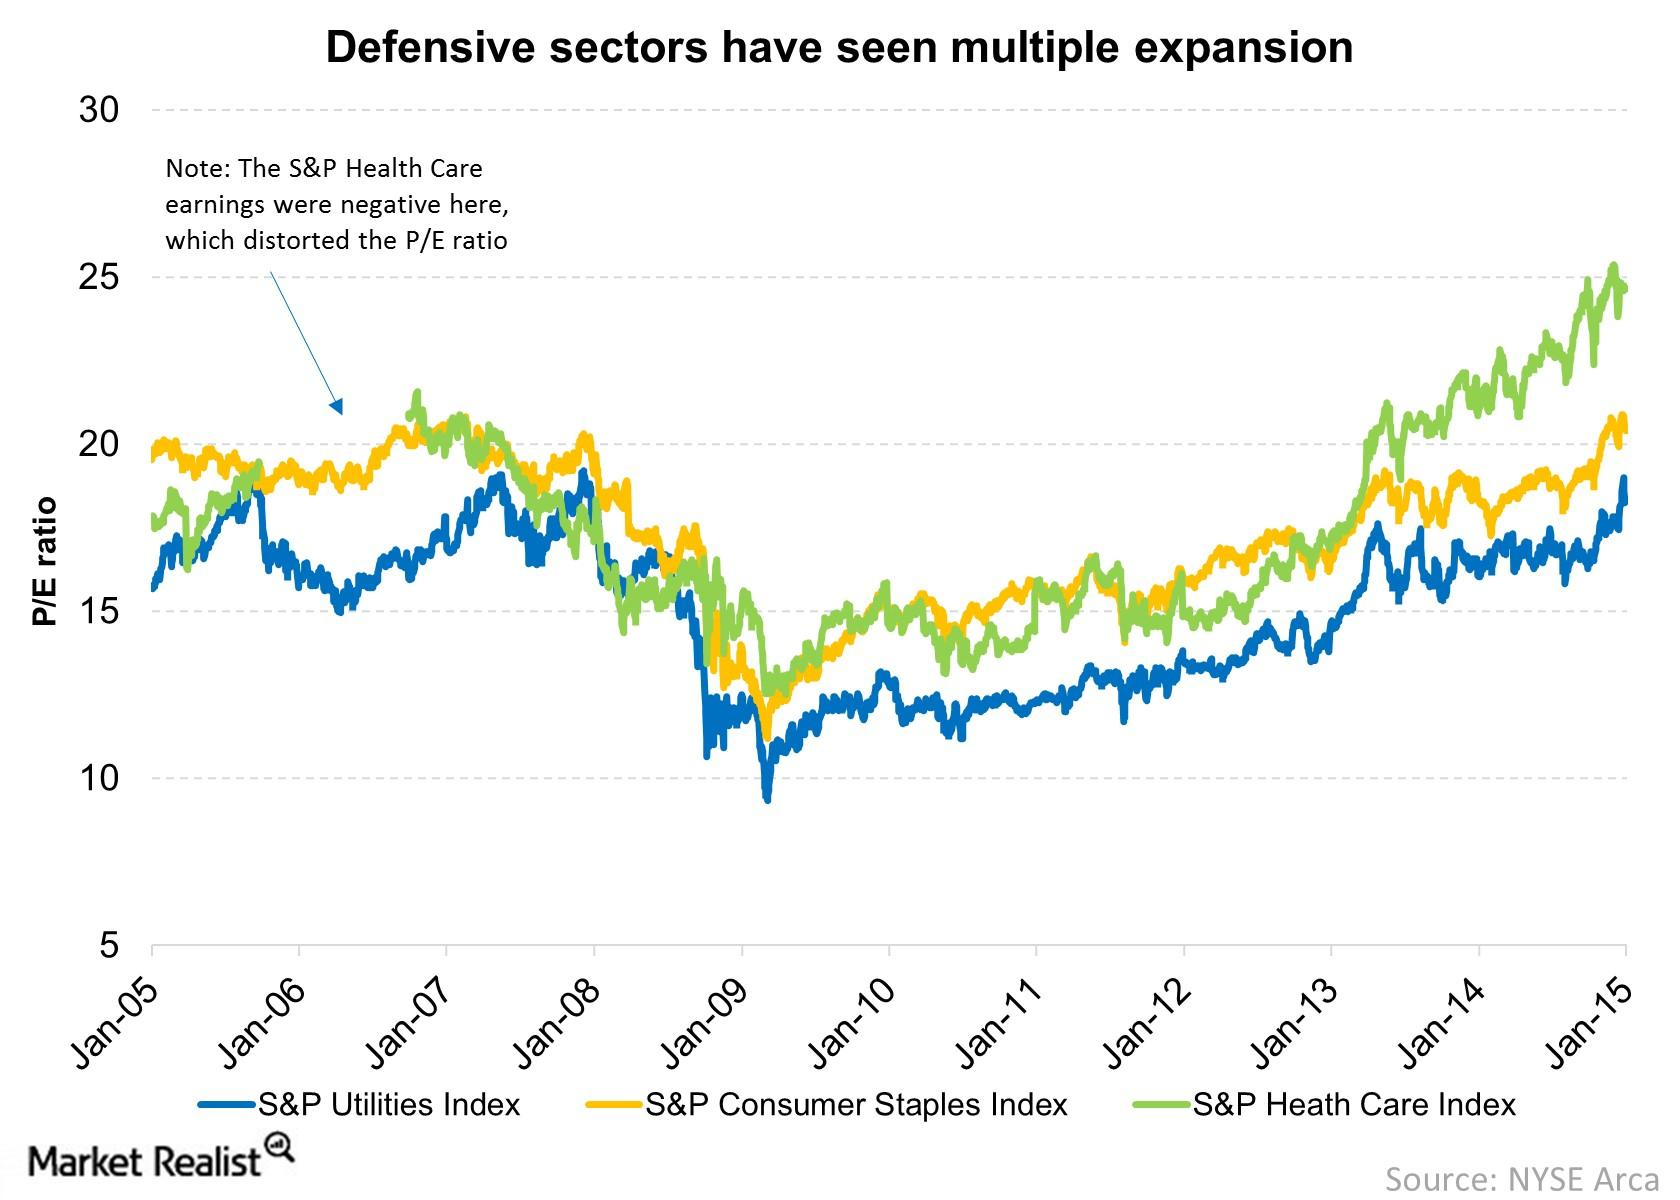 Defensive sectors have run up causing the cost of the defensive strategy to rise